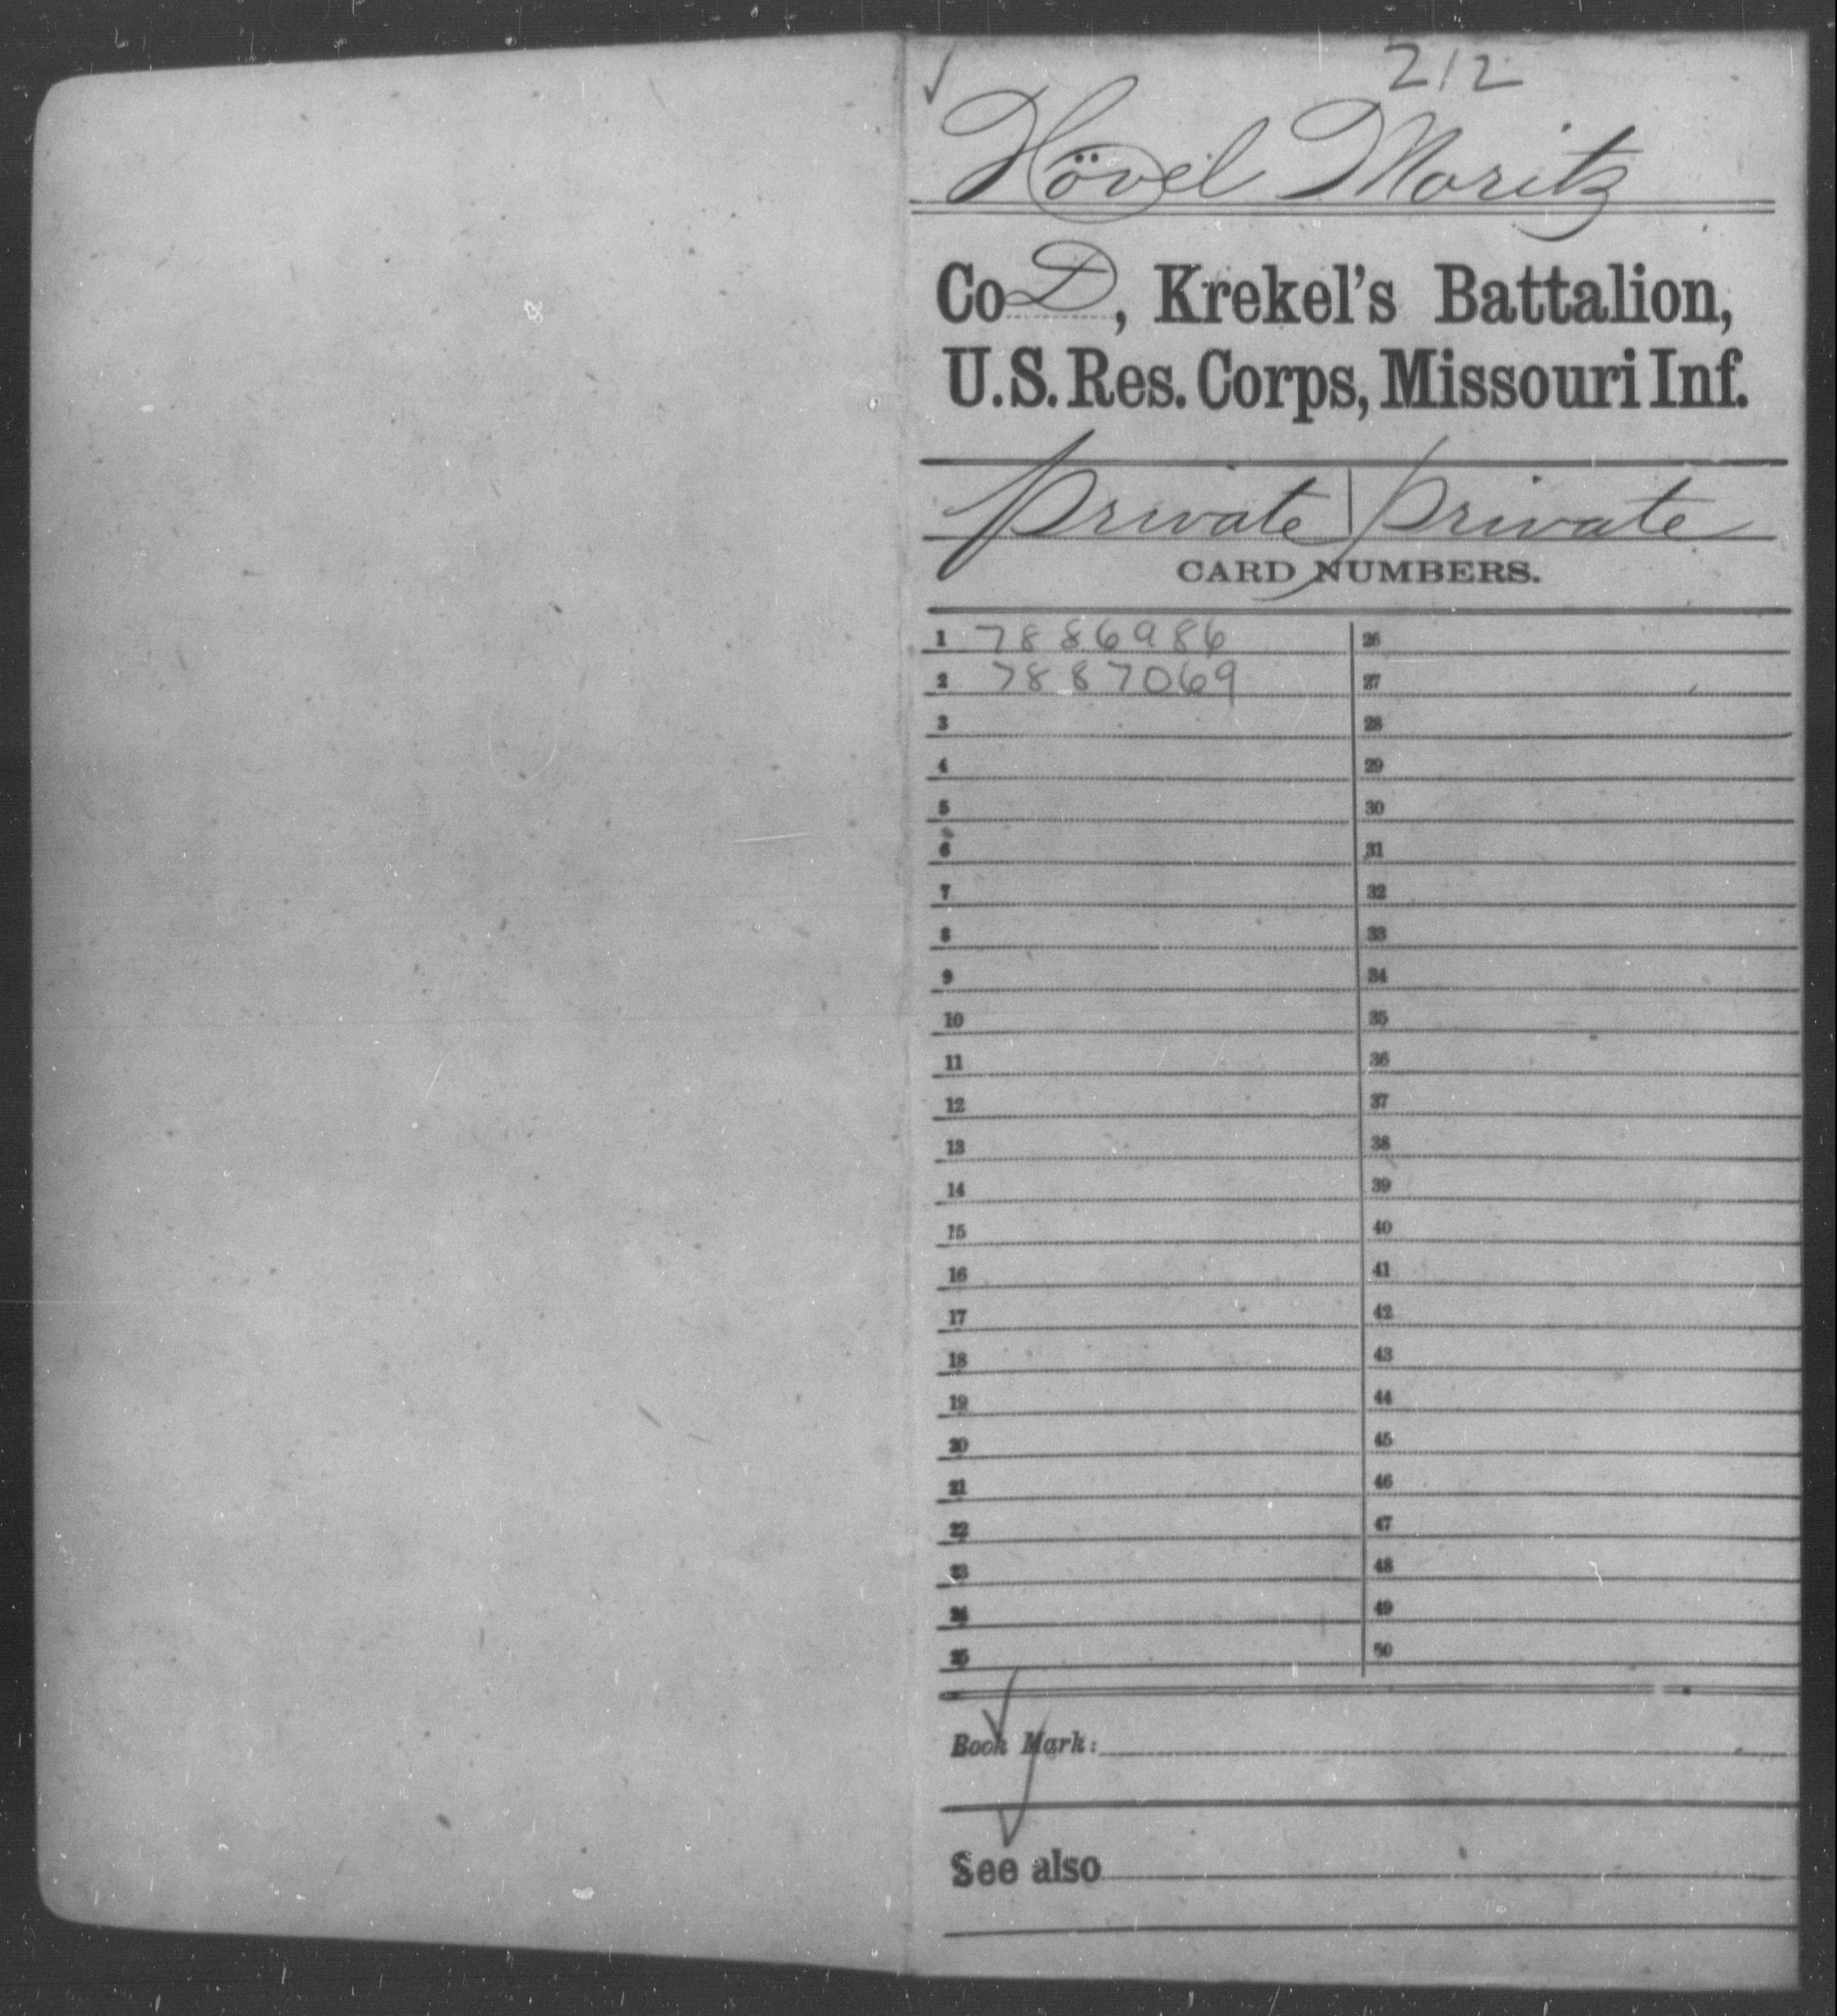 [Missouri] Hövel, Moritz - Age 29, Year: 1862 - Benton Cadets, Infantry AND Gasconade County Battalion, US Reserve Corps, Infantry AND Krekel's Battalion, US Reserve Corps, Infantry